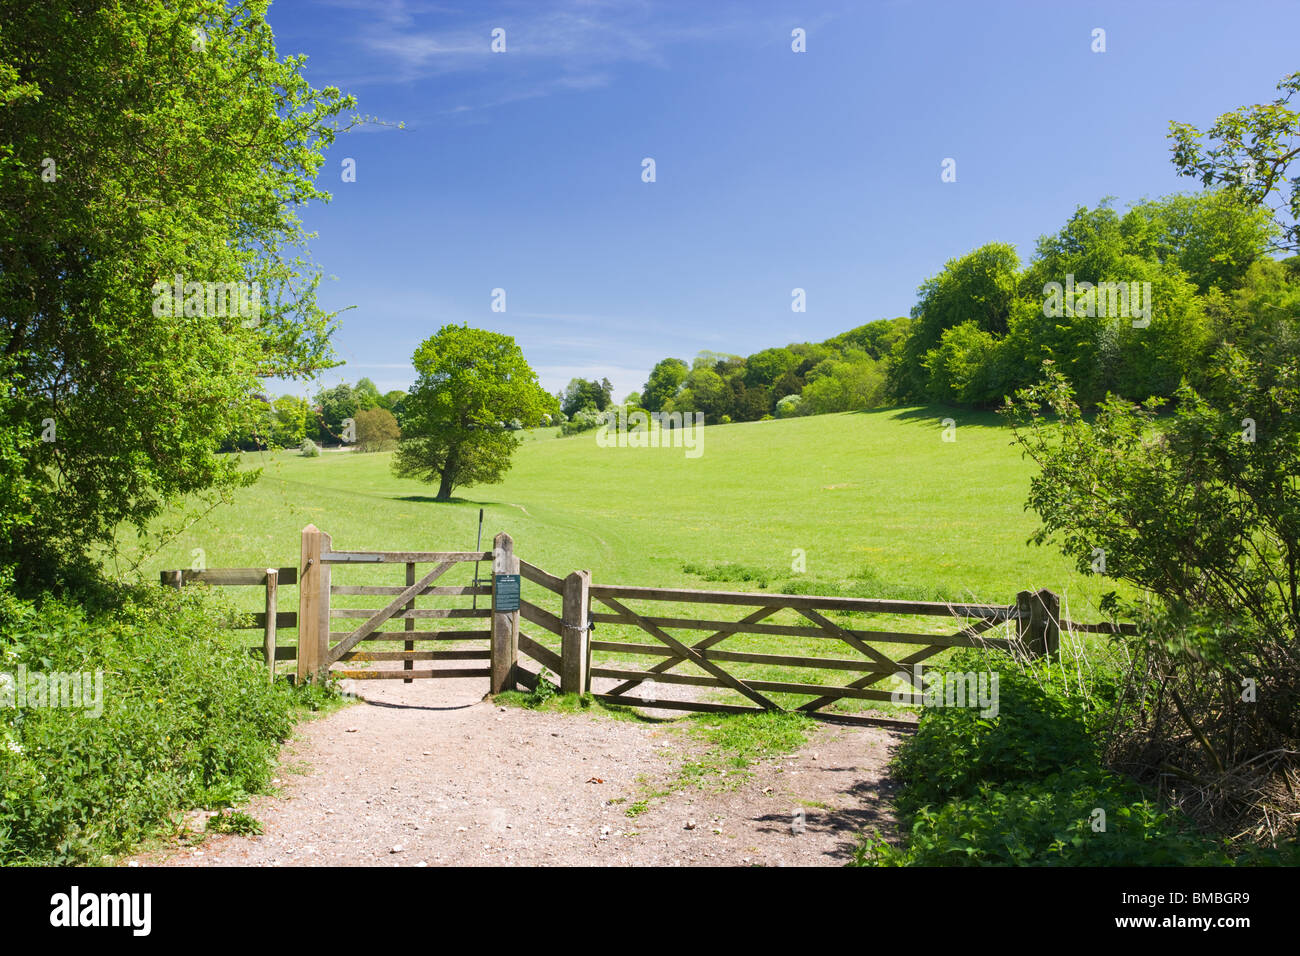 Gate into field at Ranmore, Dorking, Surrey, UK - Stock Image